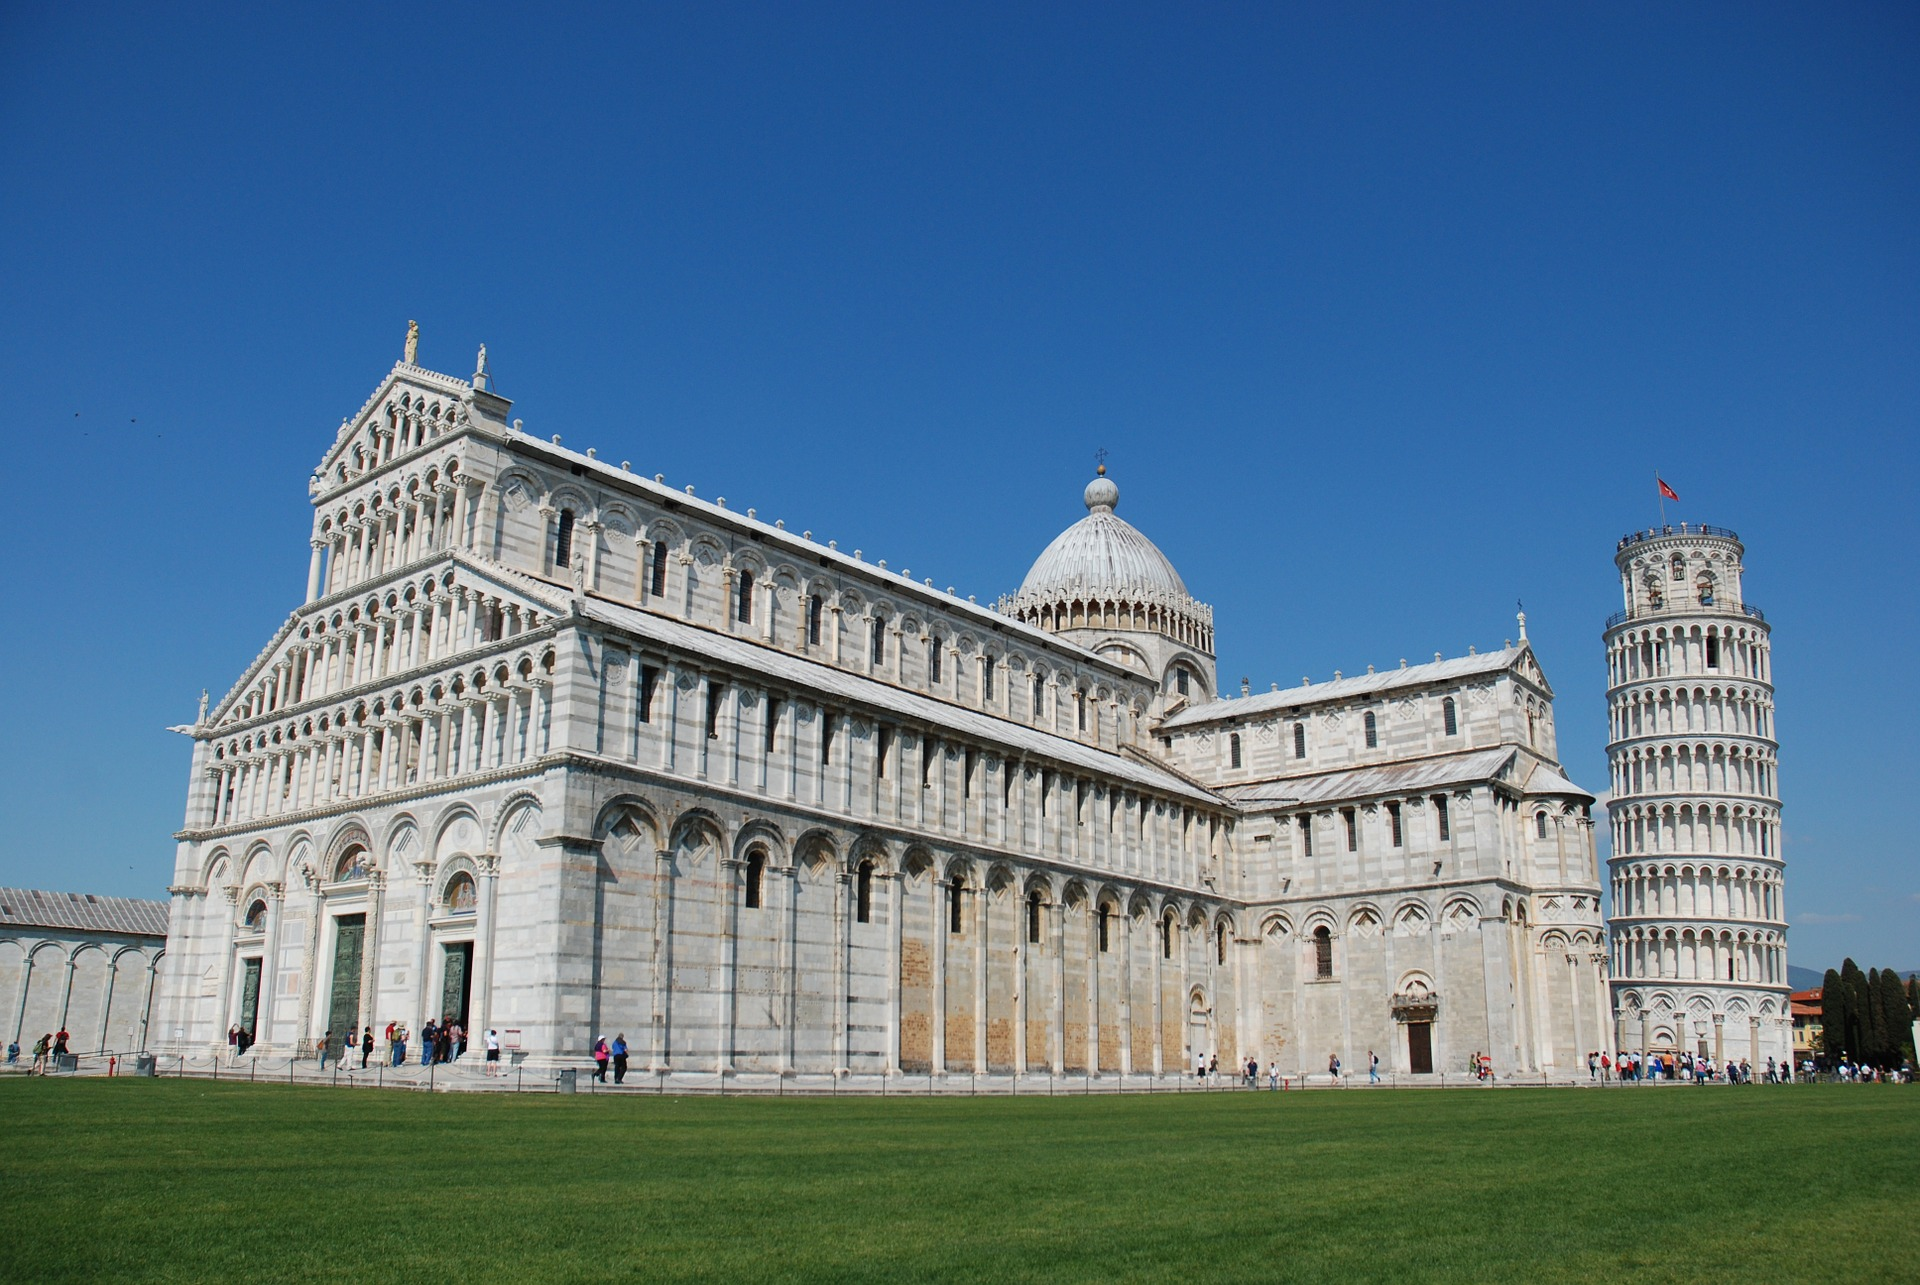 The Leaning Tower of Pisa and the Pisa Cathedral.